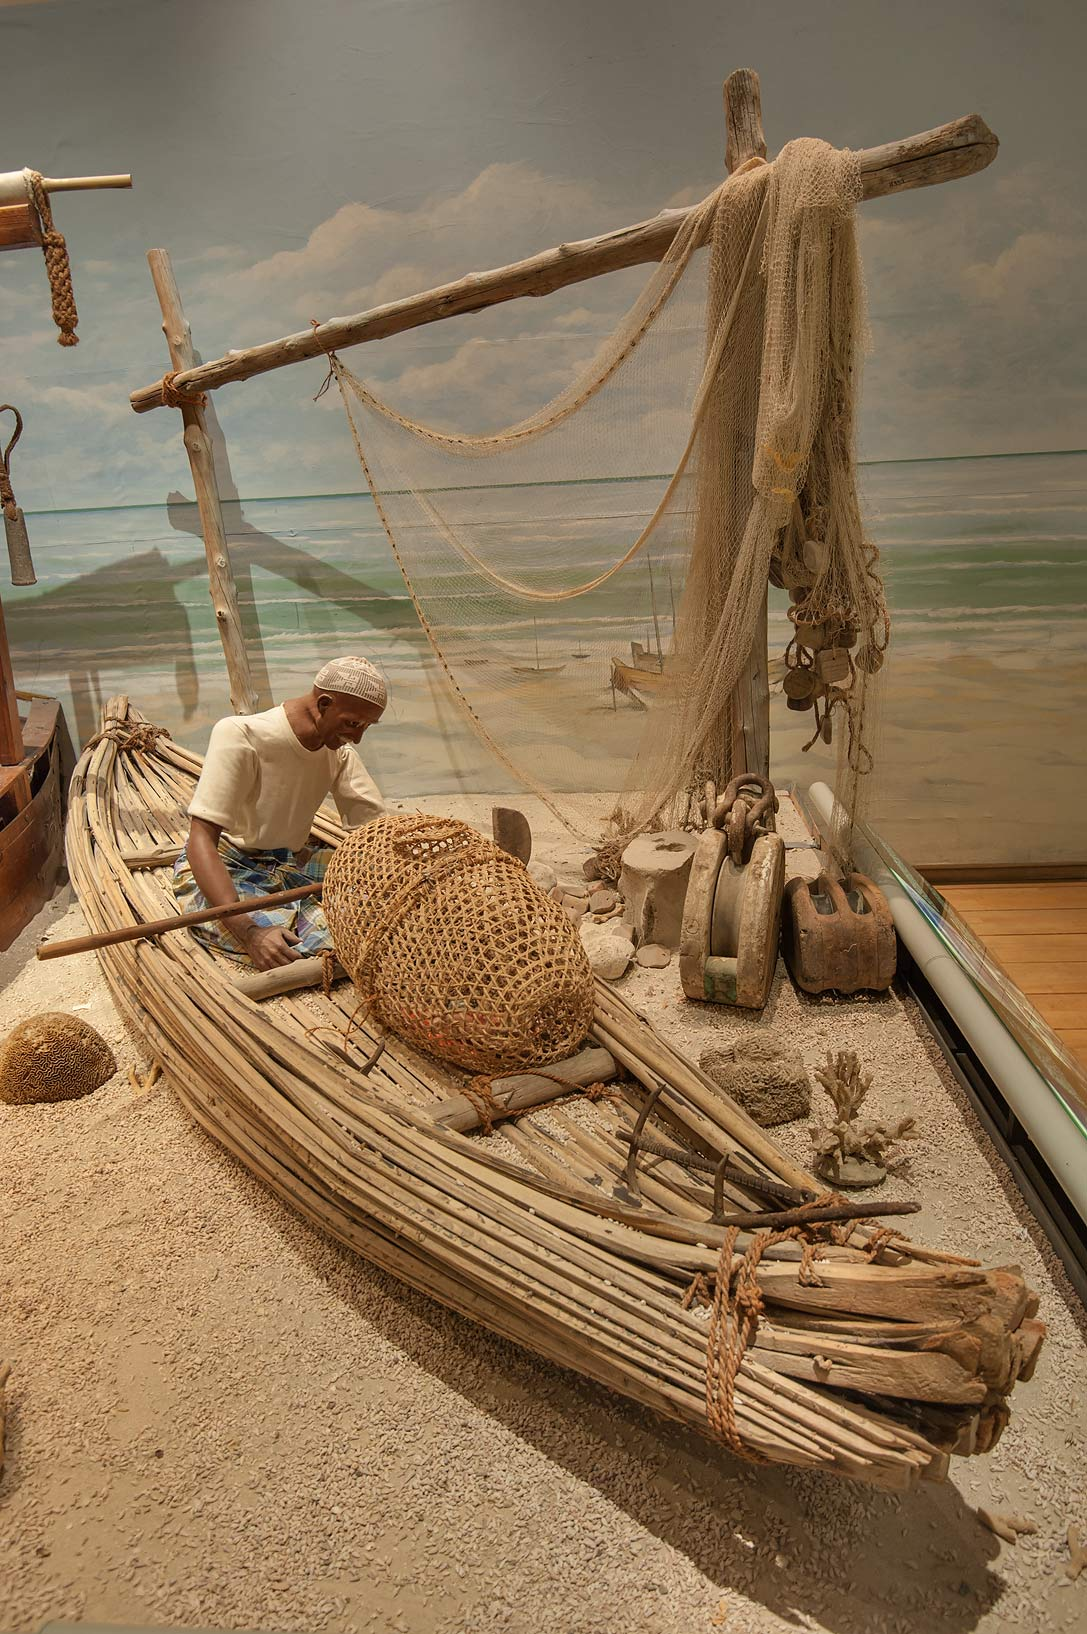 Exhibition of marine crafts in Bahrain National Museum. Manama, Bahrain